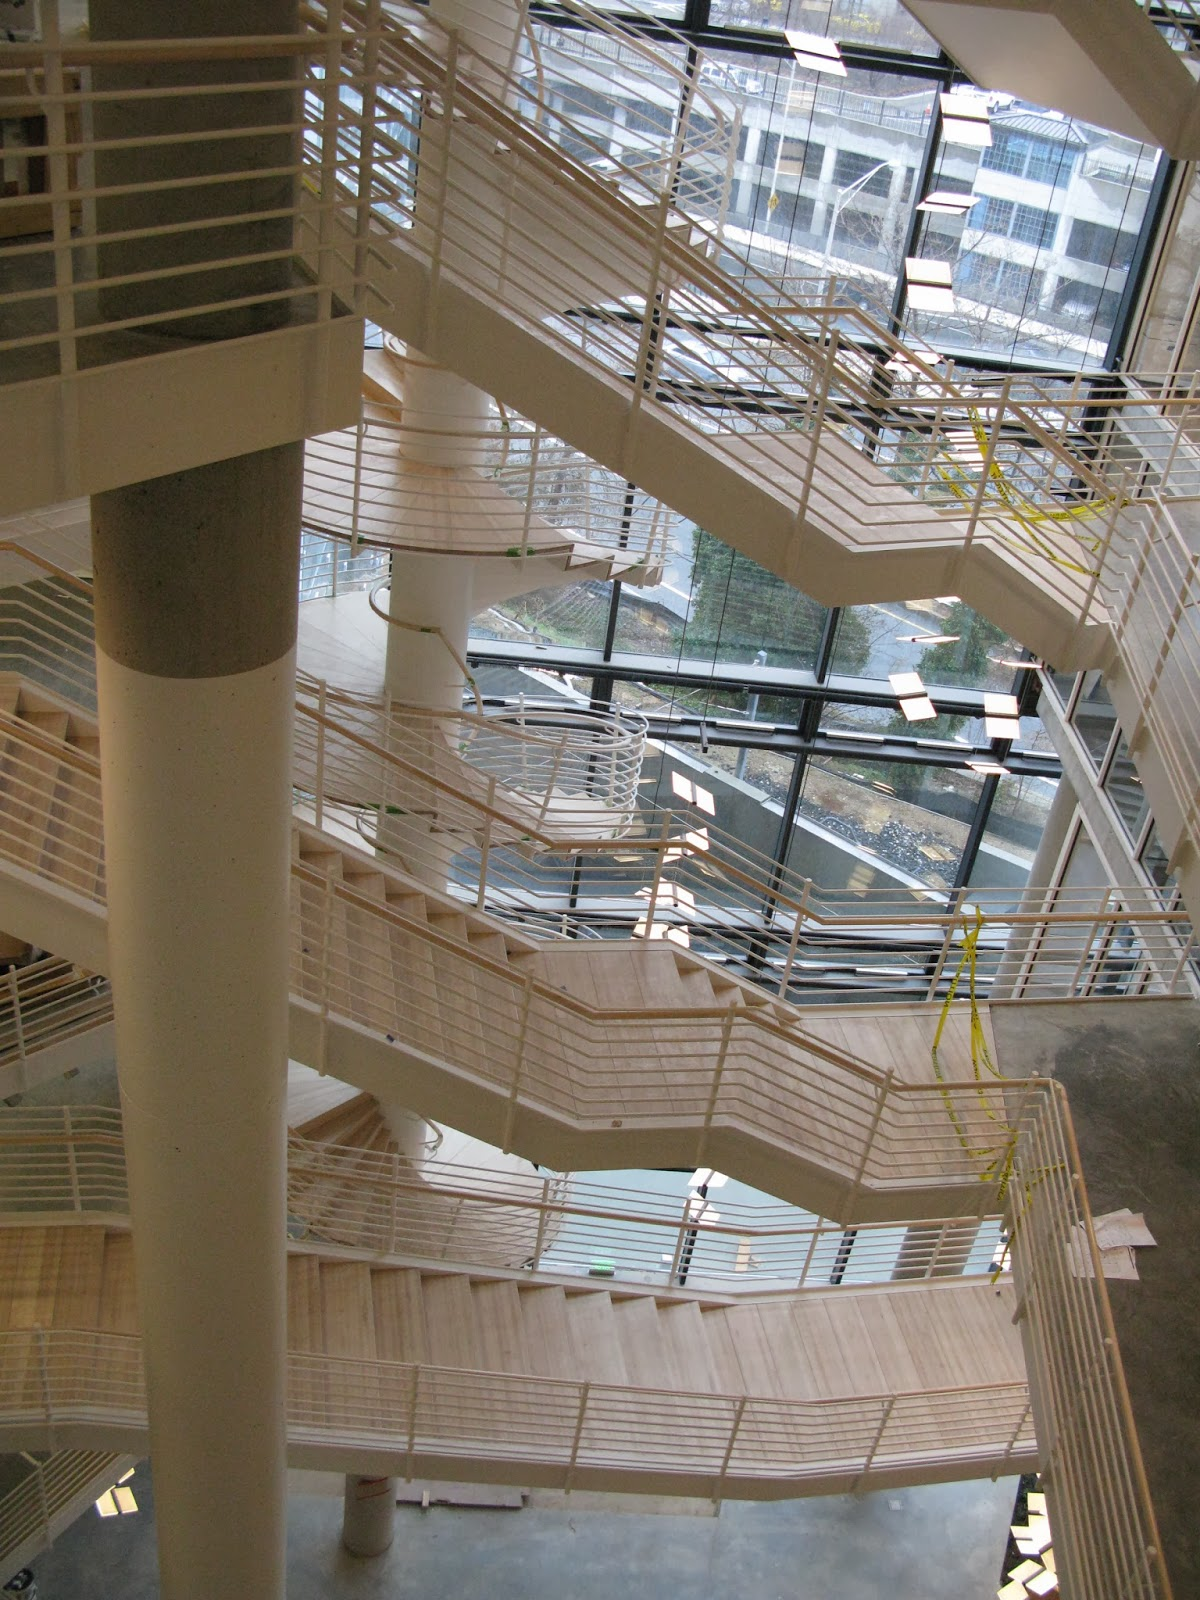 How codes influence architecture the case of stairs for Architectural stairs